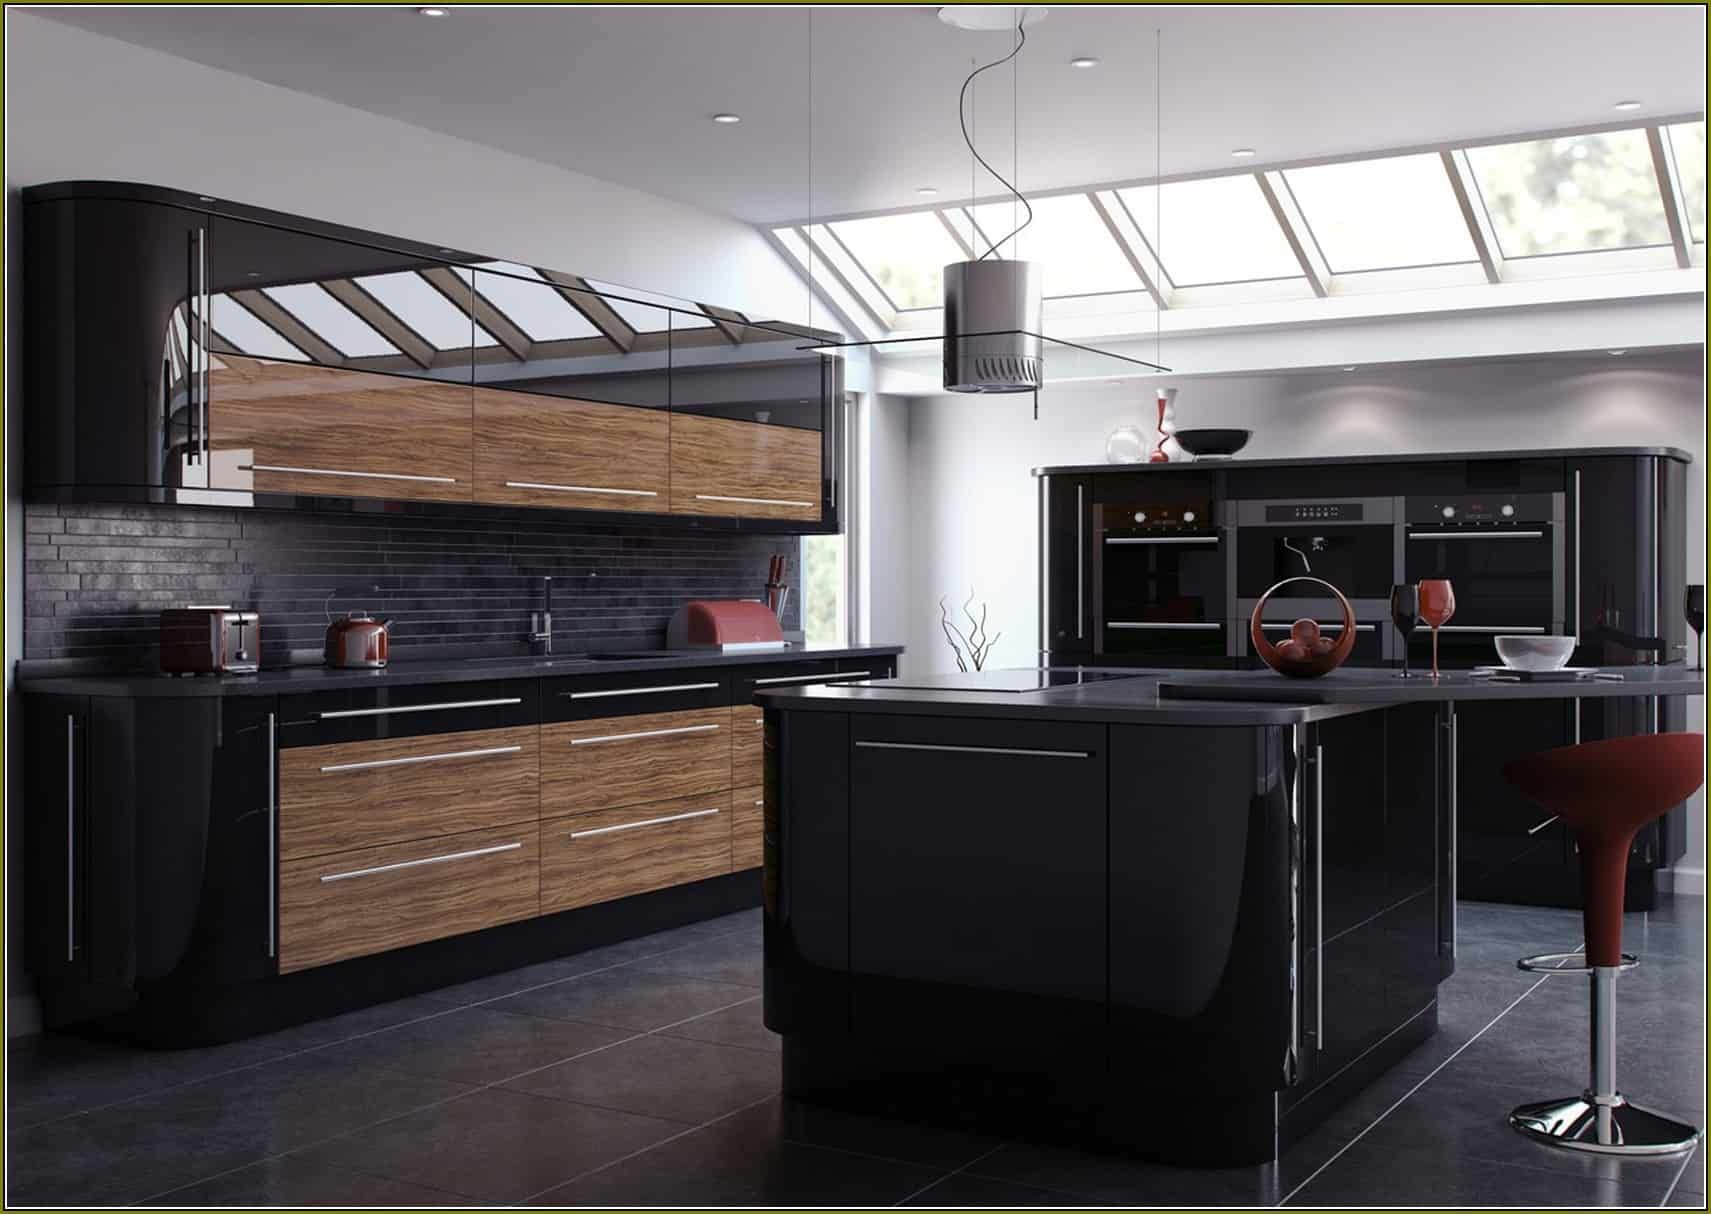 Outstanding Black And Wood Kitchens That Will Add Style To Your Home Homesthetics Inspiring Ideas For Your Home In 2020 High Gloss Kitchen Cabinets Modern Kitchen Design High Gloss Kitchen Doors